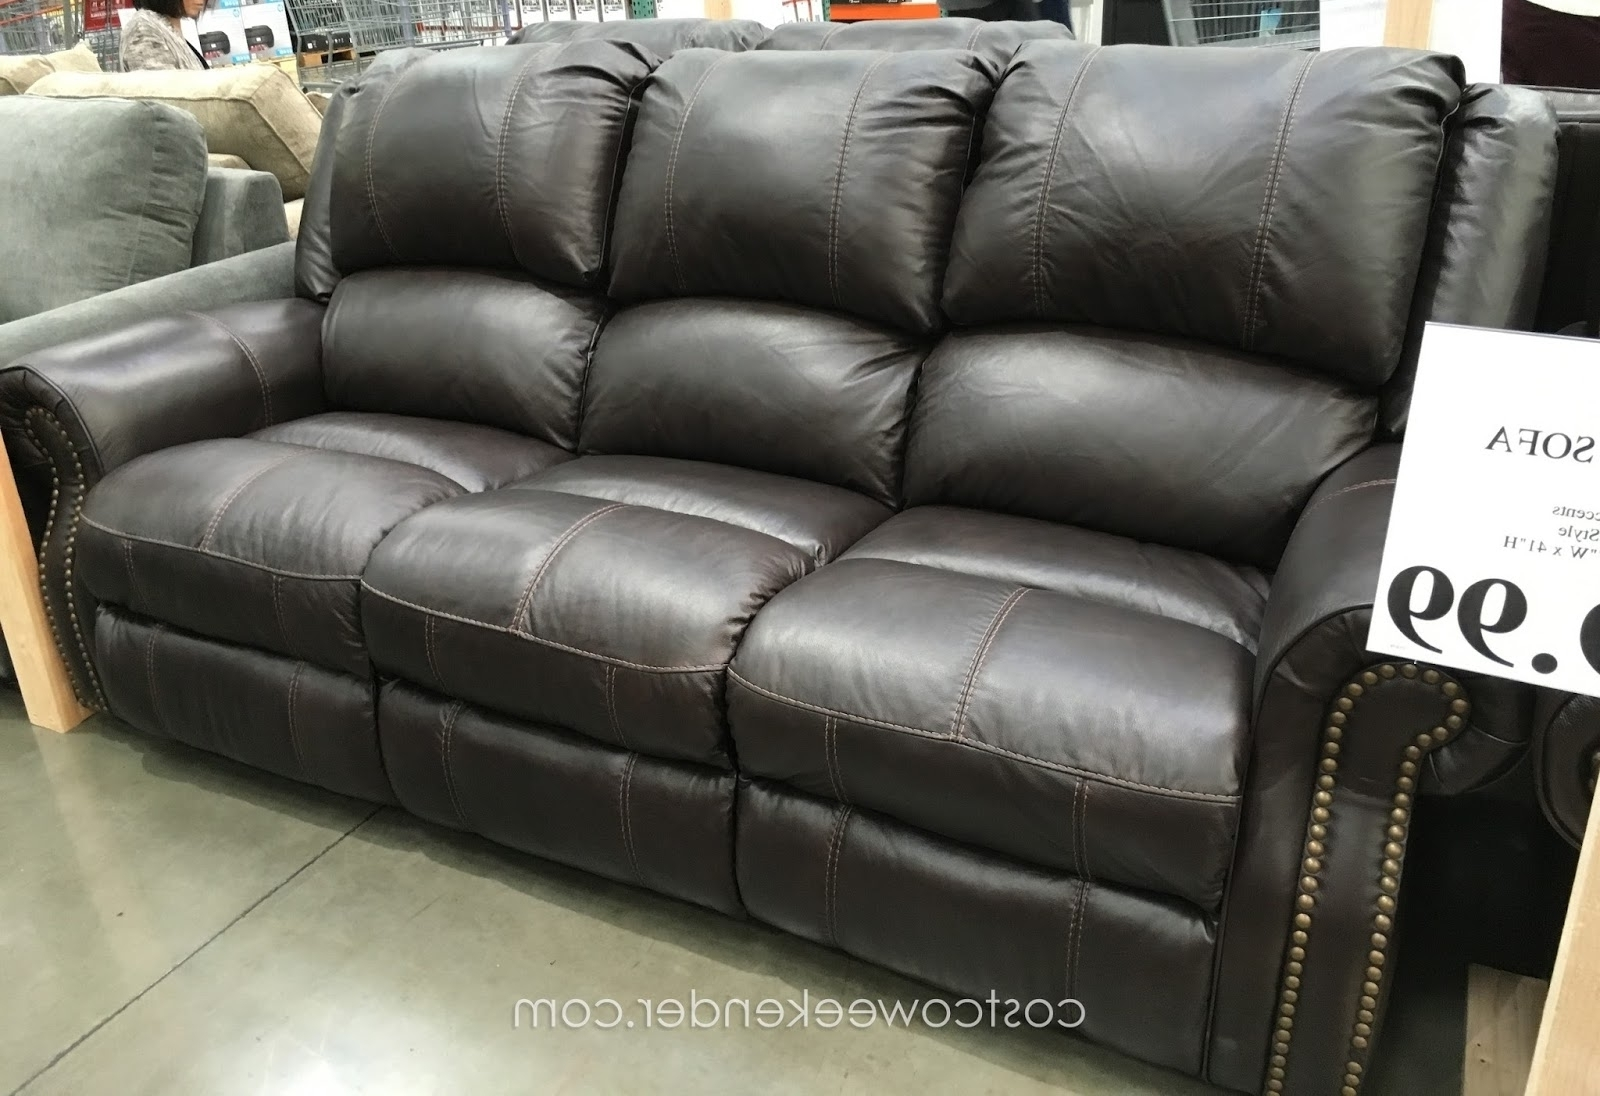 Widely Used Berkline Leather Sectional Sofas • Leather Sofa Within Berkline Sectional Sofas (View 20 of 20)